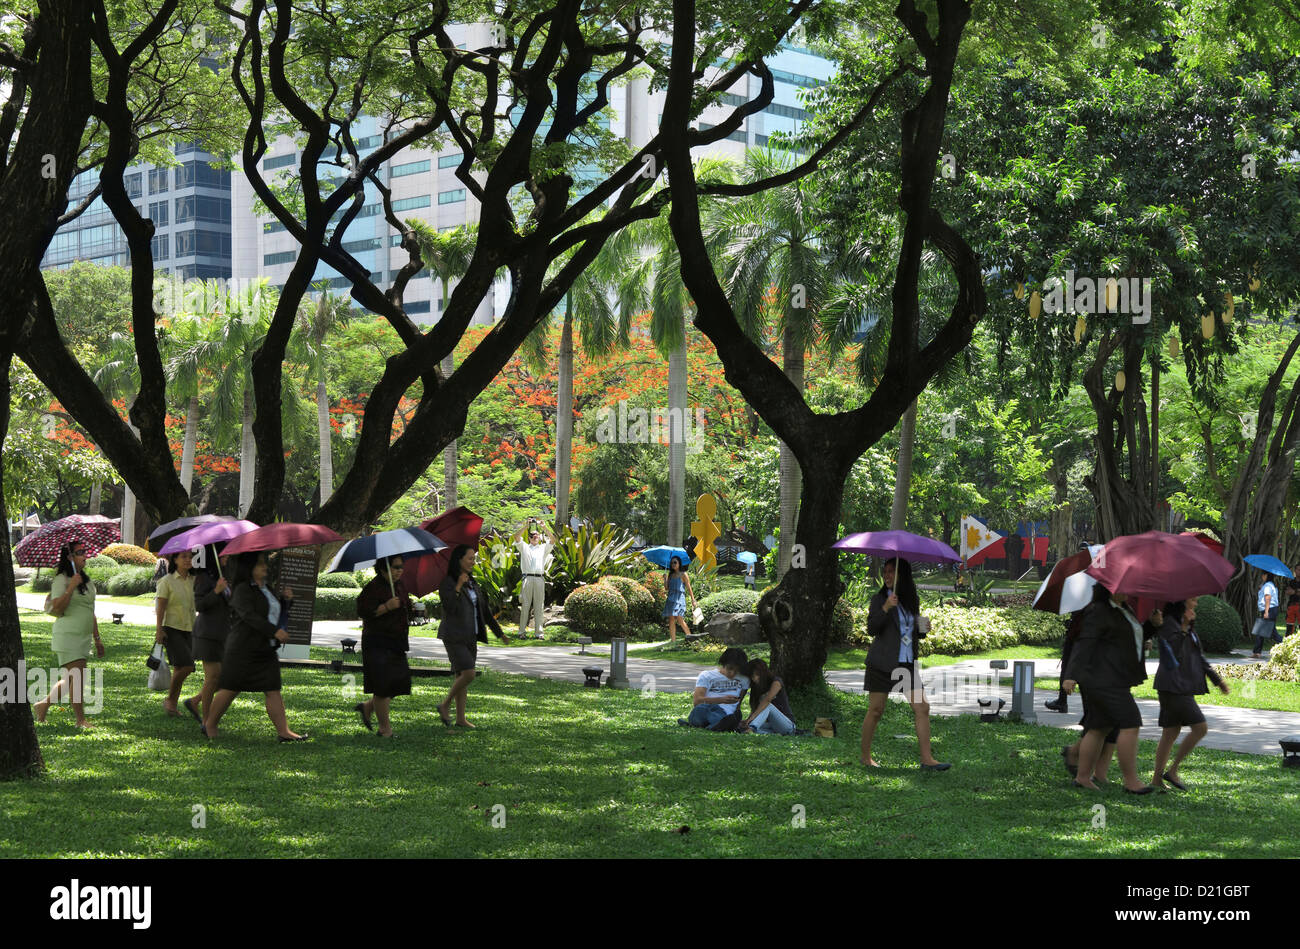 Women with umbrellas, Ayala Triangle Park in Makati City, Luzon Island, Philippines, Asia - Stock Image